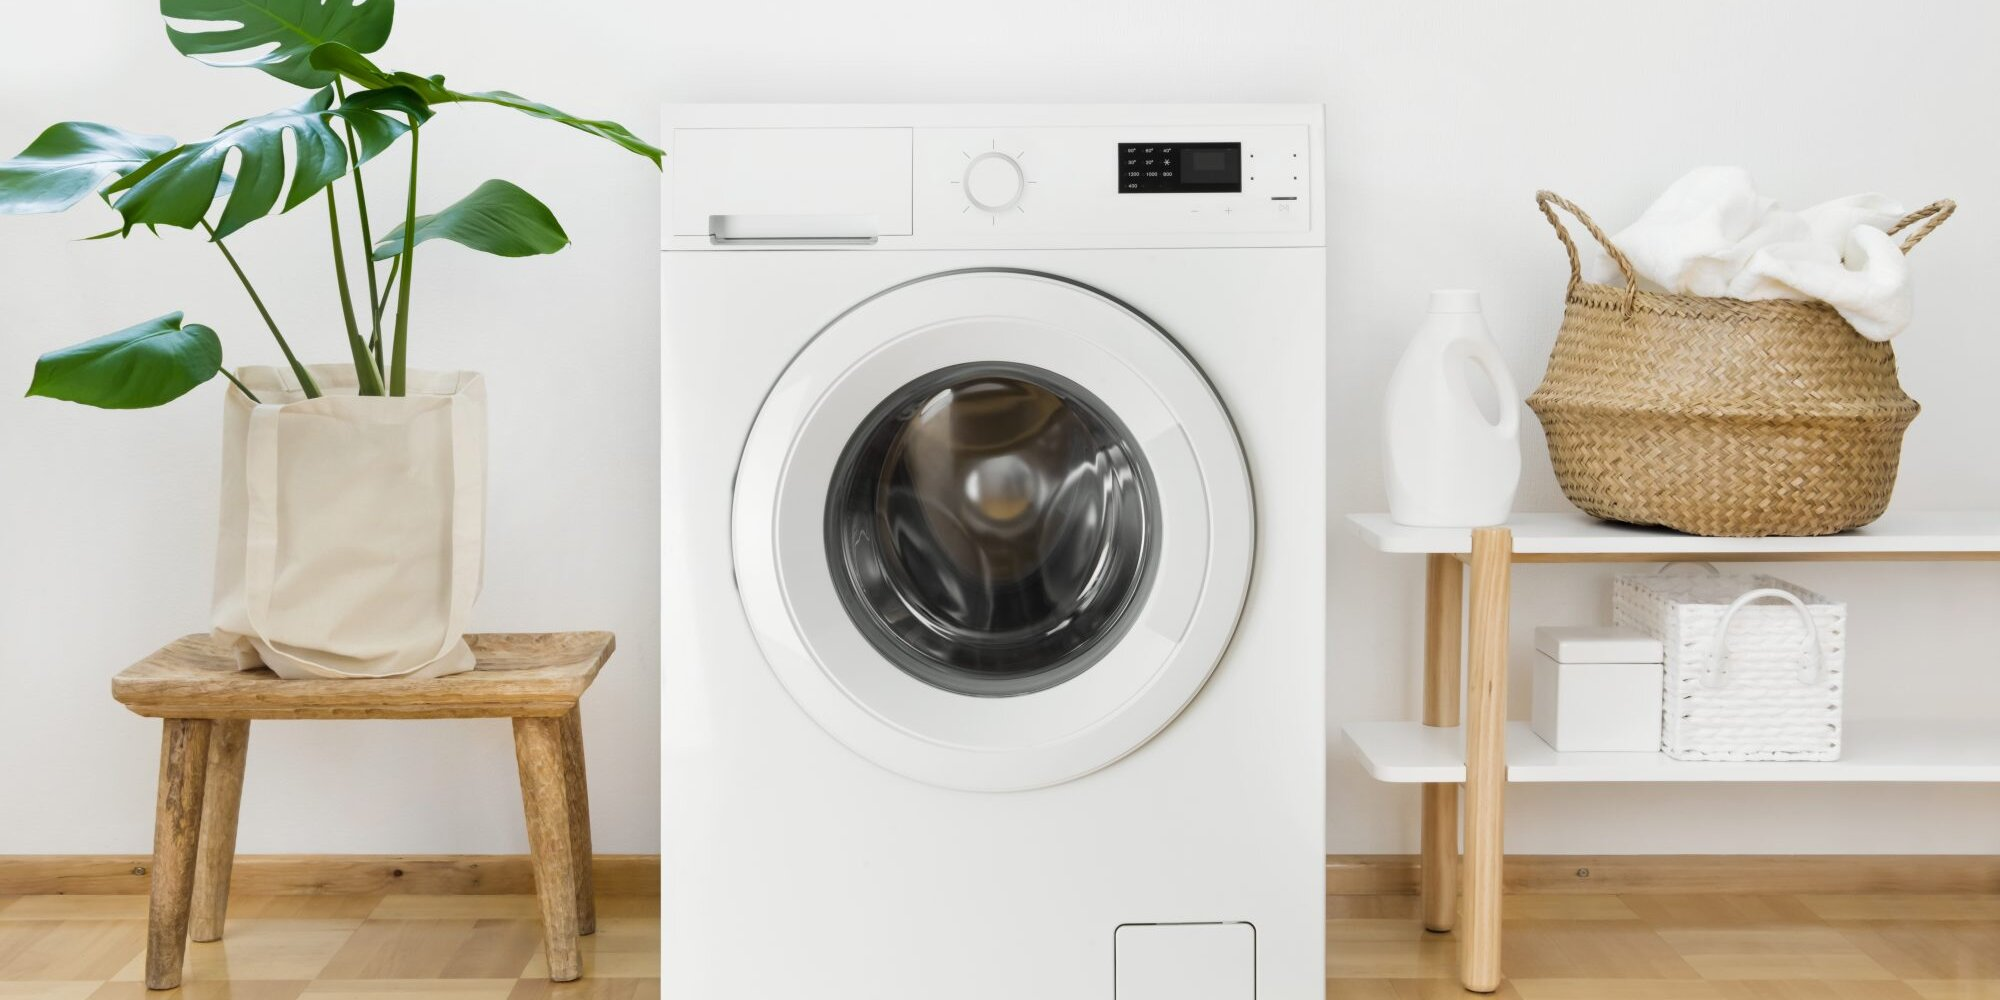 5 Budget-Friendly Products That Make Your Laundry Routine Greener